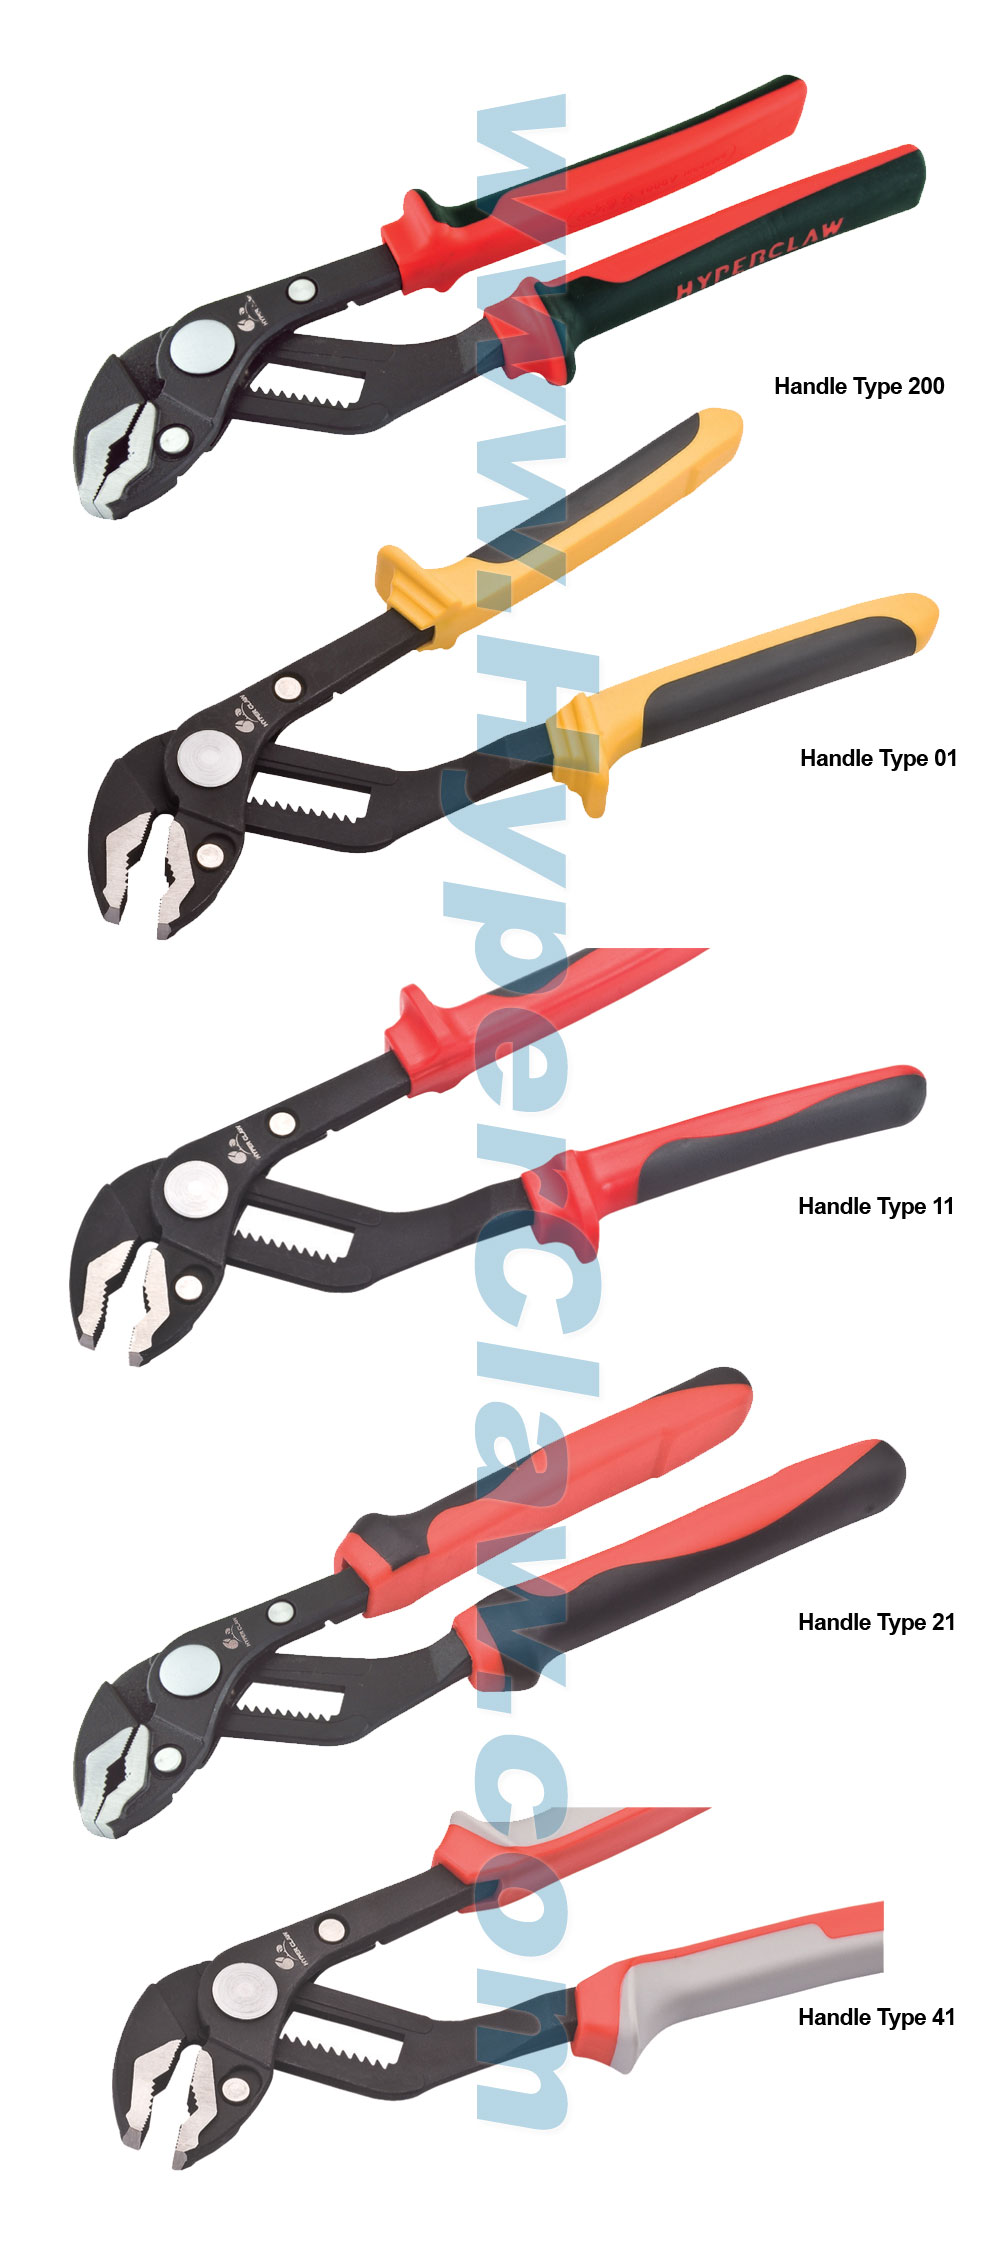 Two Component Handles Pliers from plier manufacturer ... |Types Of Pliers